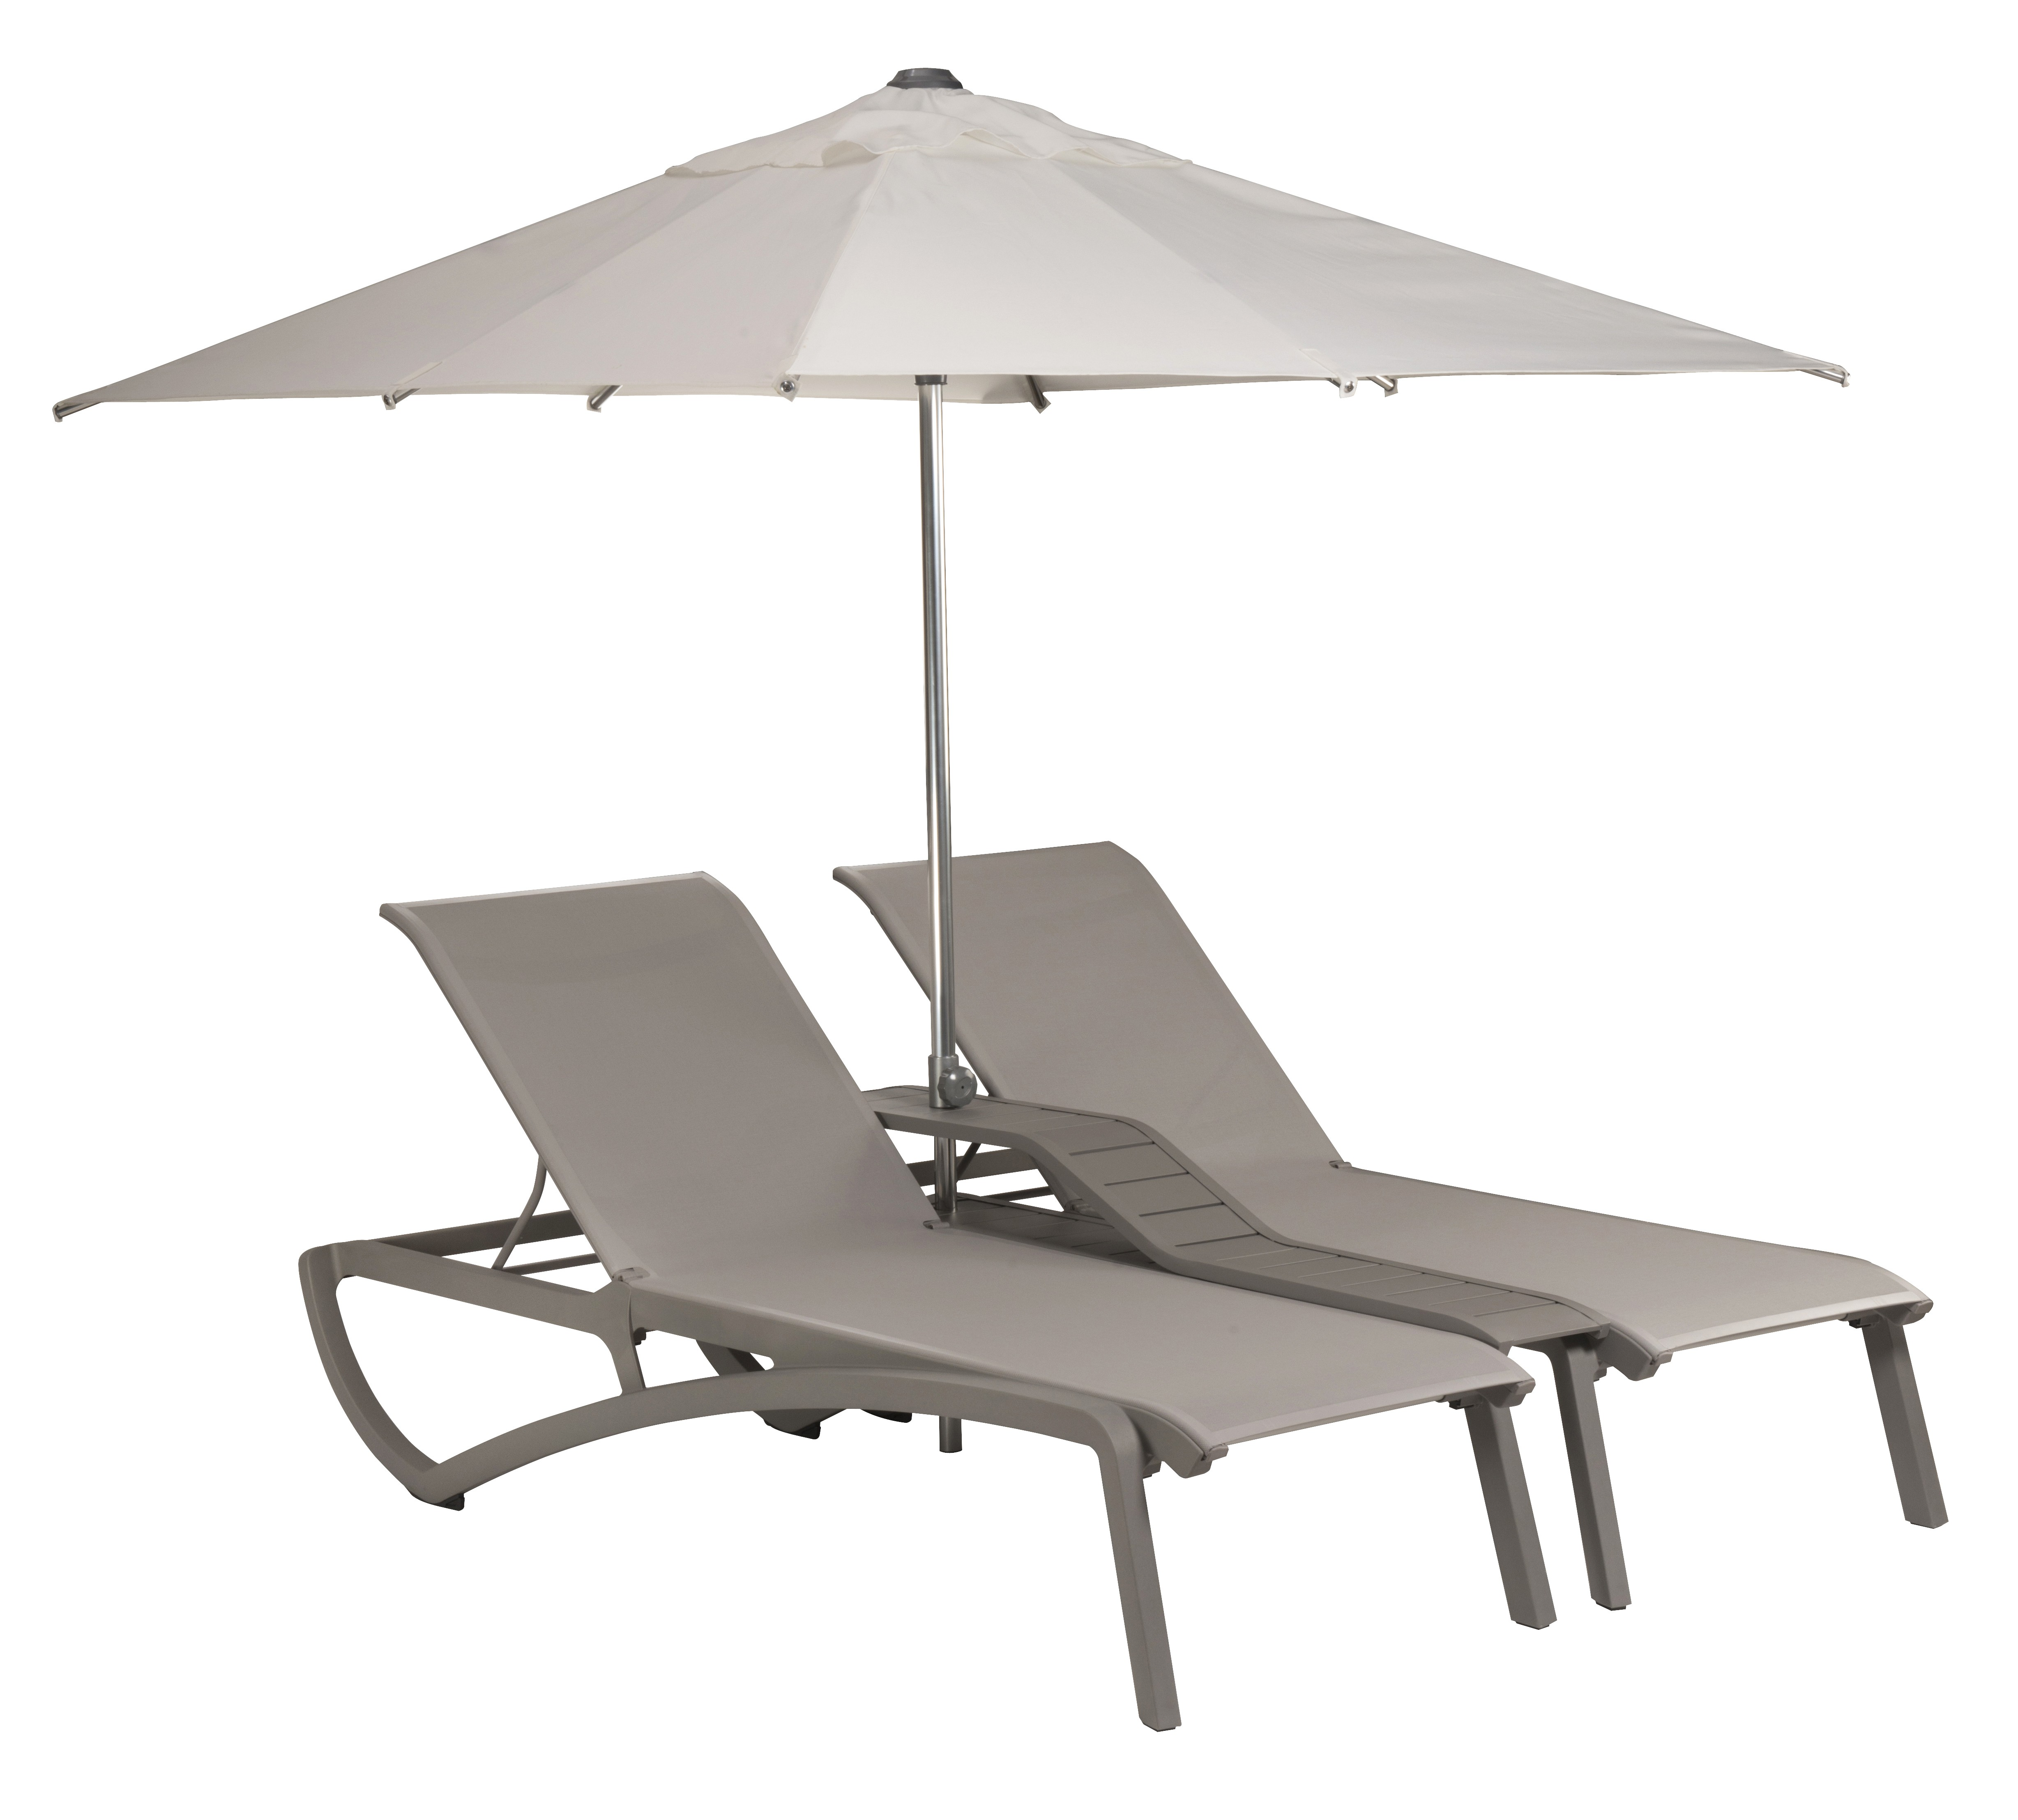 double bain de soleil sunset gris toile gris parasol. Black Bedroom Furniture Sets. Home Design Ideas